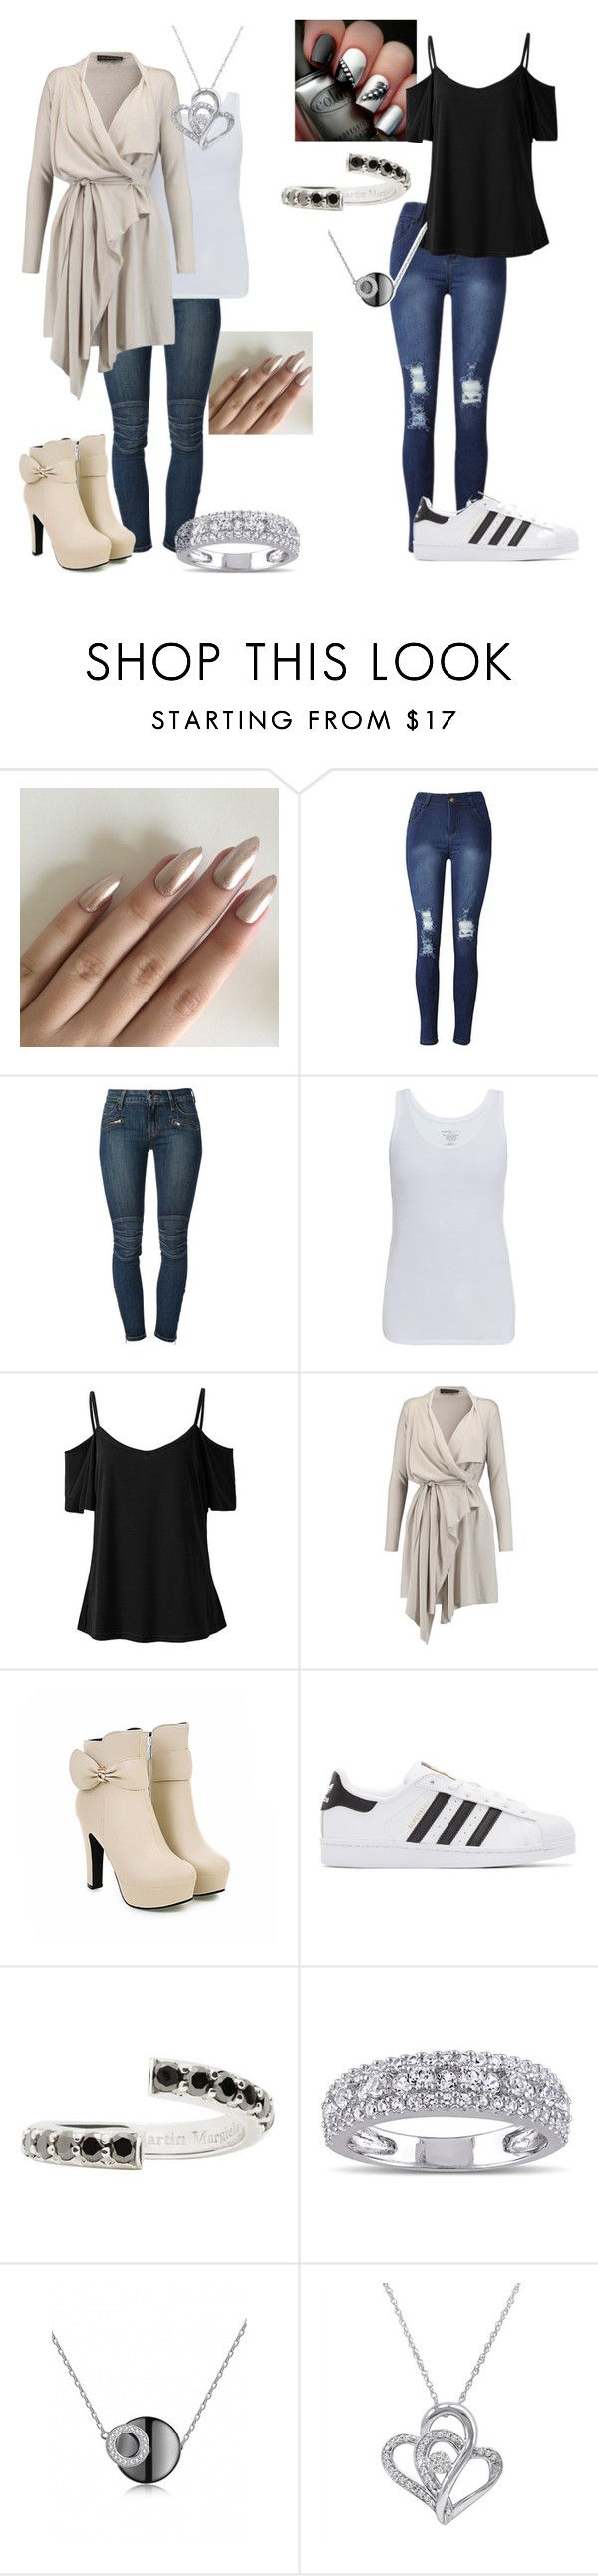 """Dressy/casual"" by dpclma ❤ liked on Polyvore featuring Koral, Majestic, Maria Grachvogel, adidas Originals, Maison Margiela, Miadora and Amanda Rose Collection"